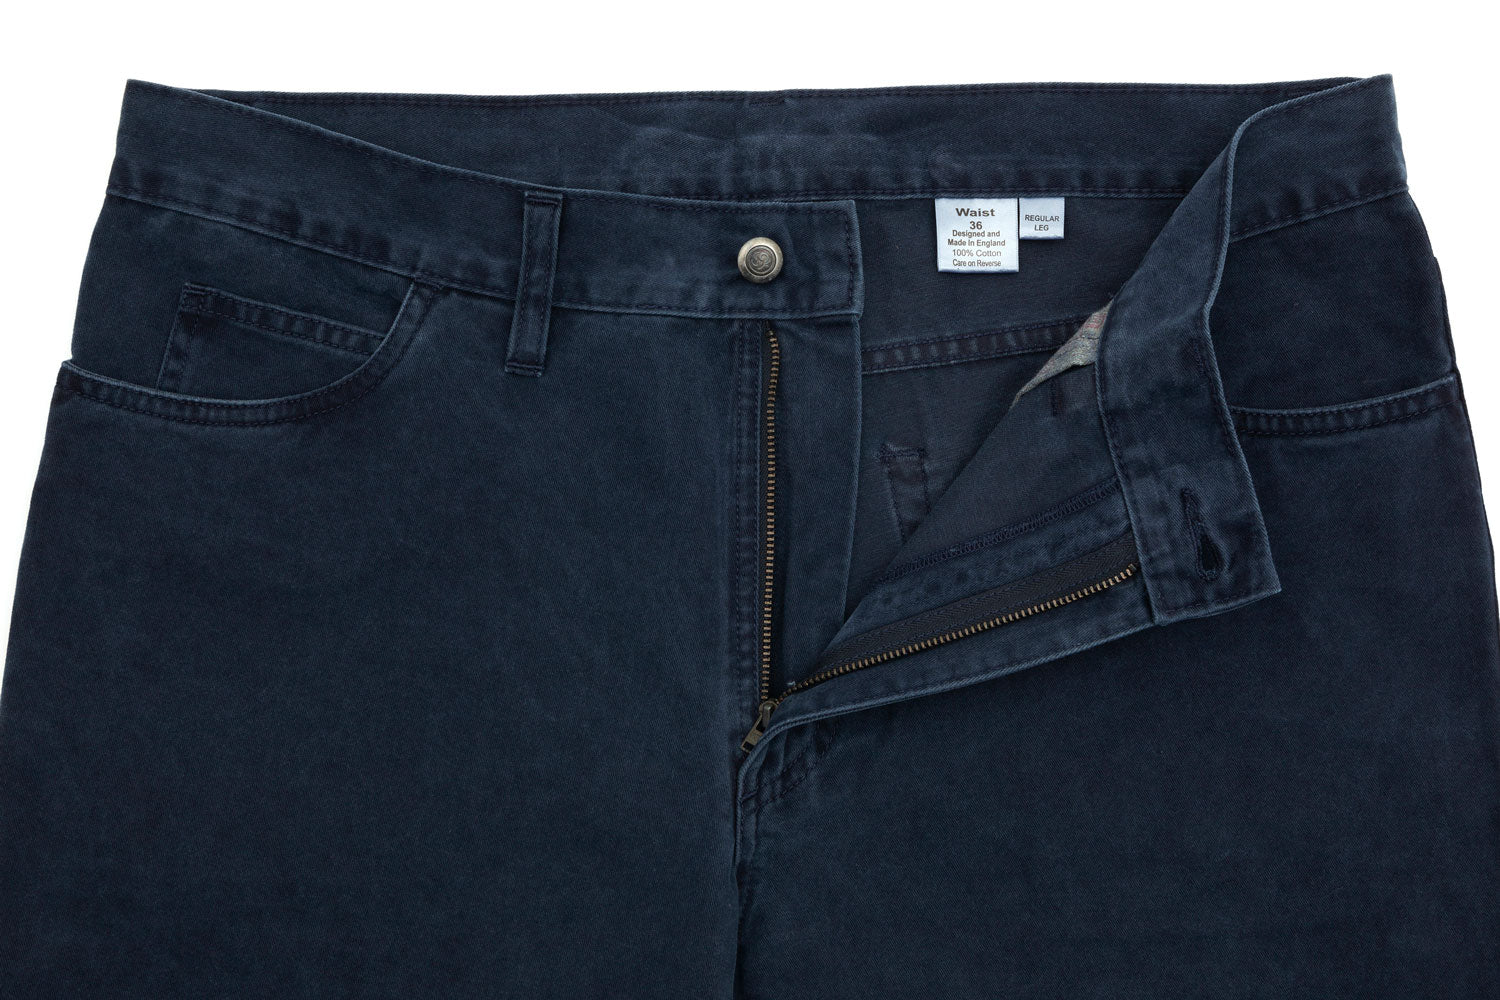 Navy cotton jean-chino hybrid designed and made exclusively by Regent.